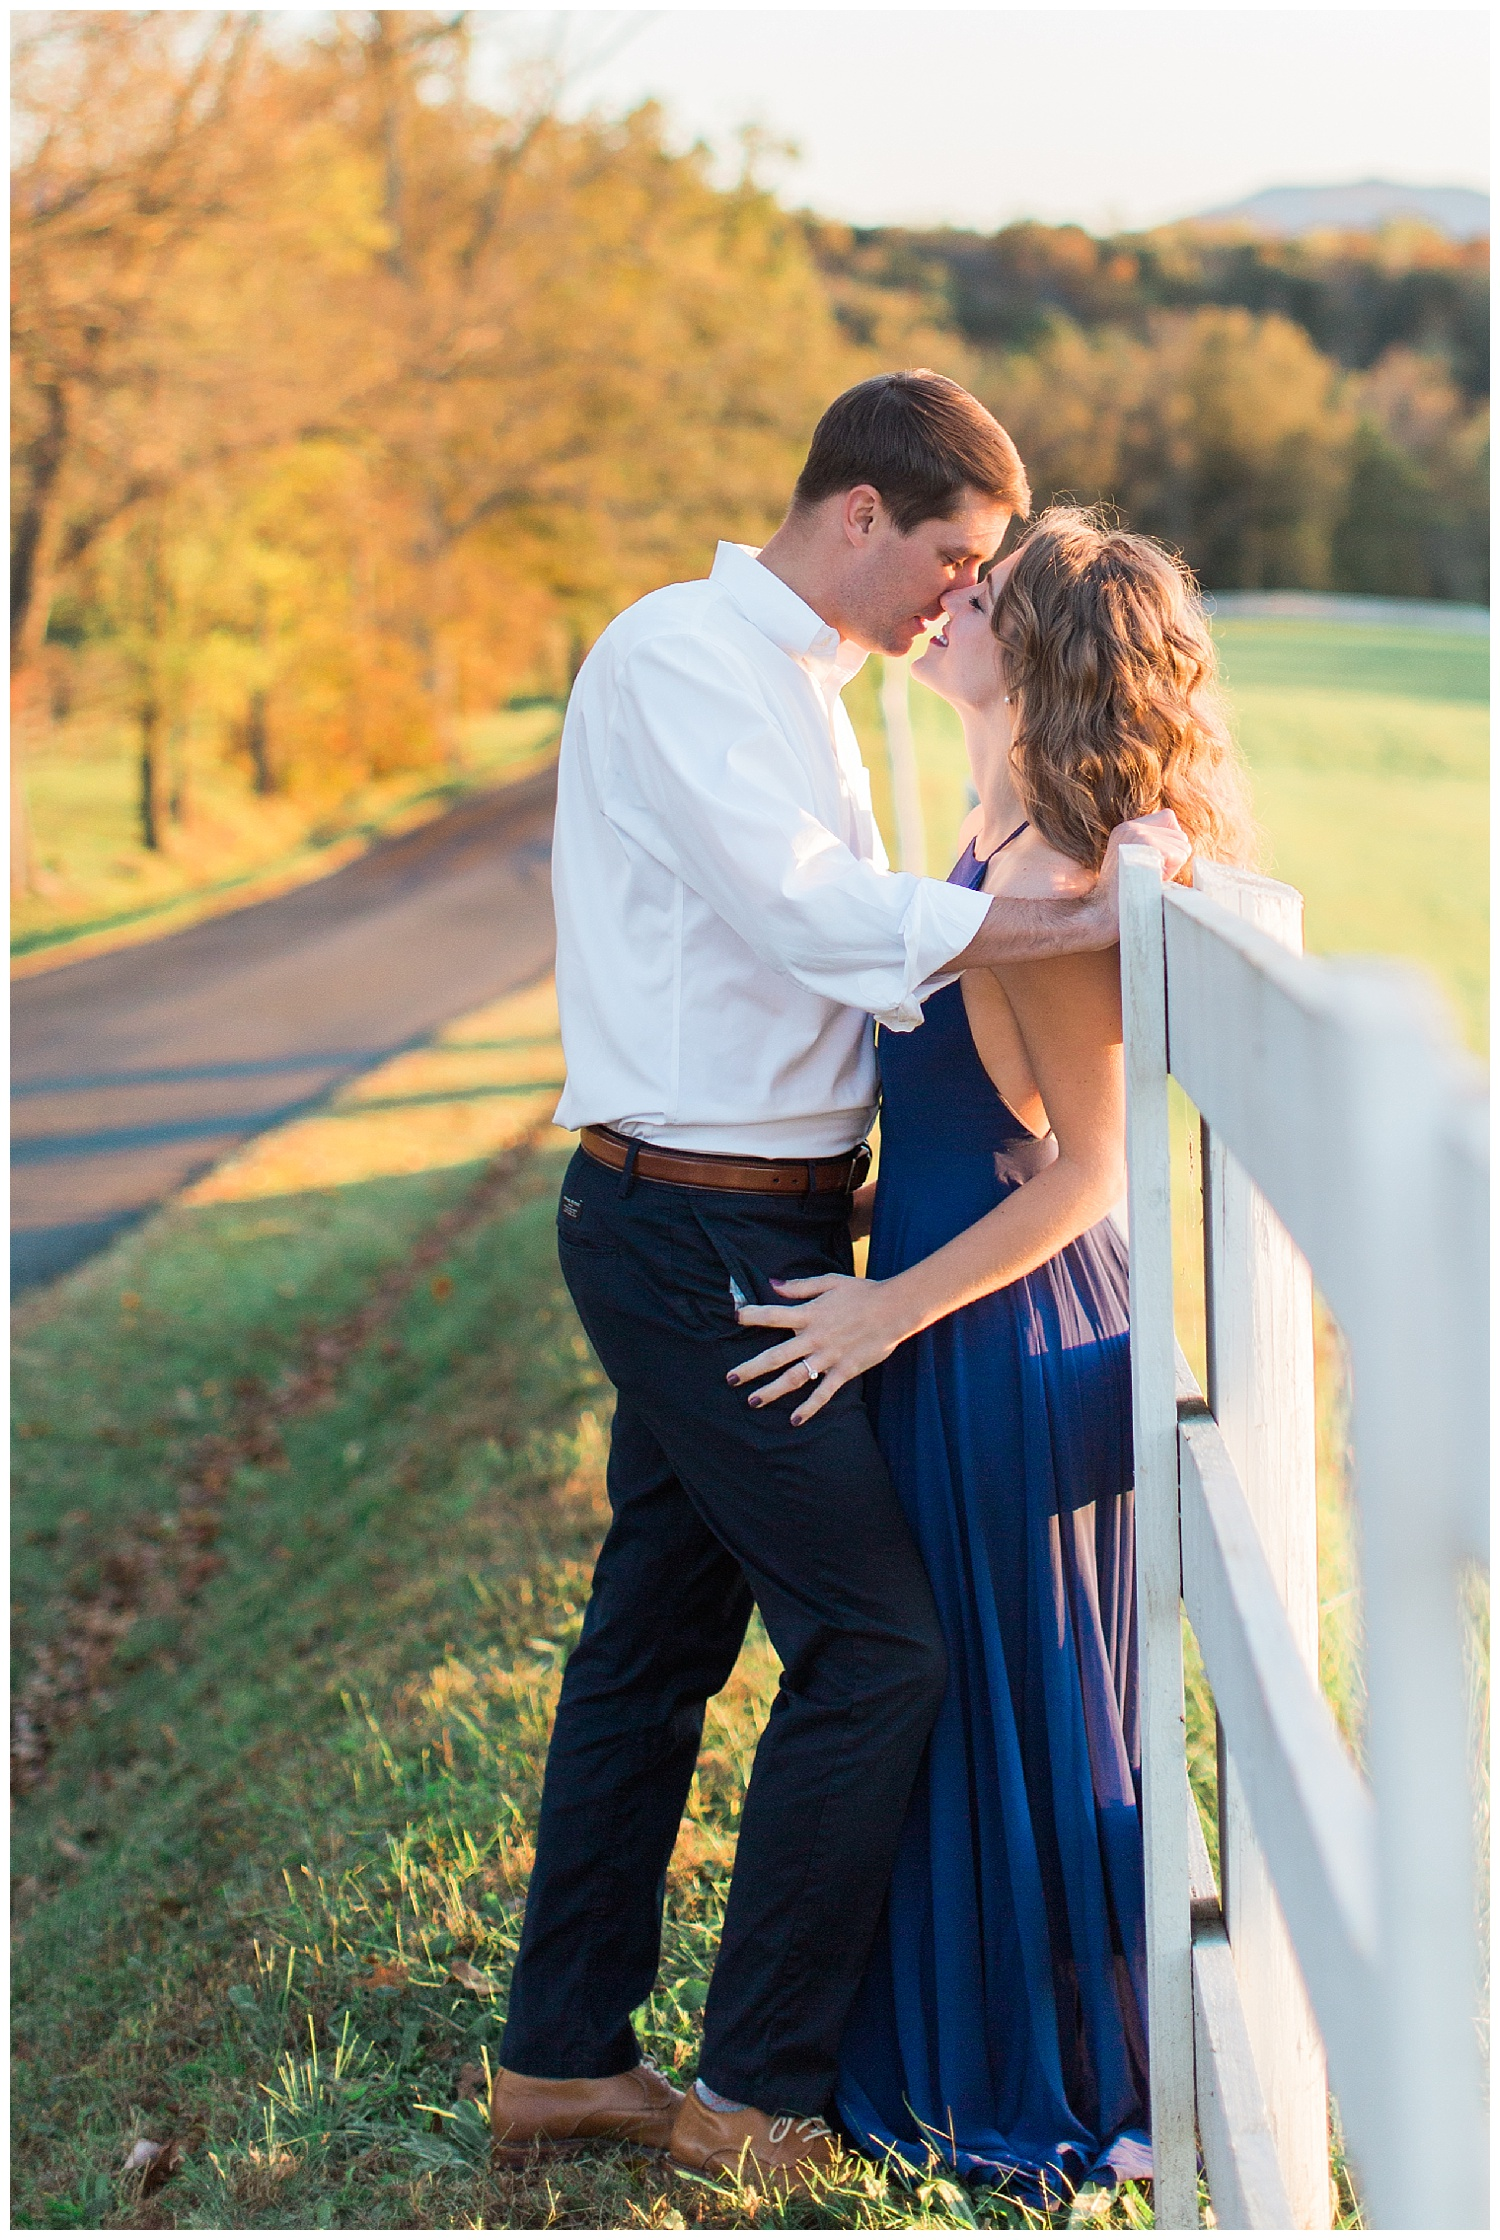 charlottesville_wedding_photographer_chiles_peach_orchard26.jpg